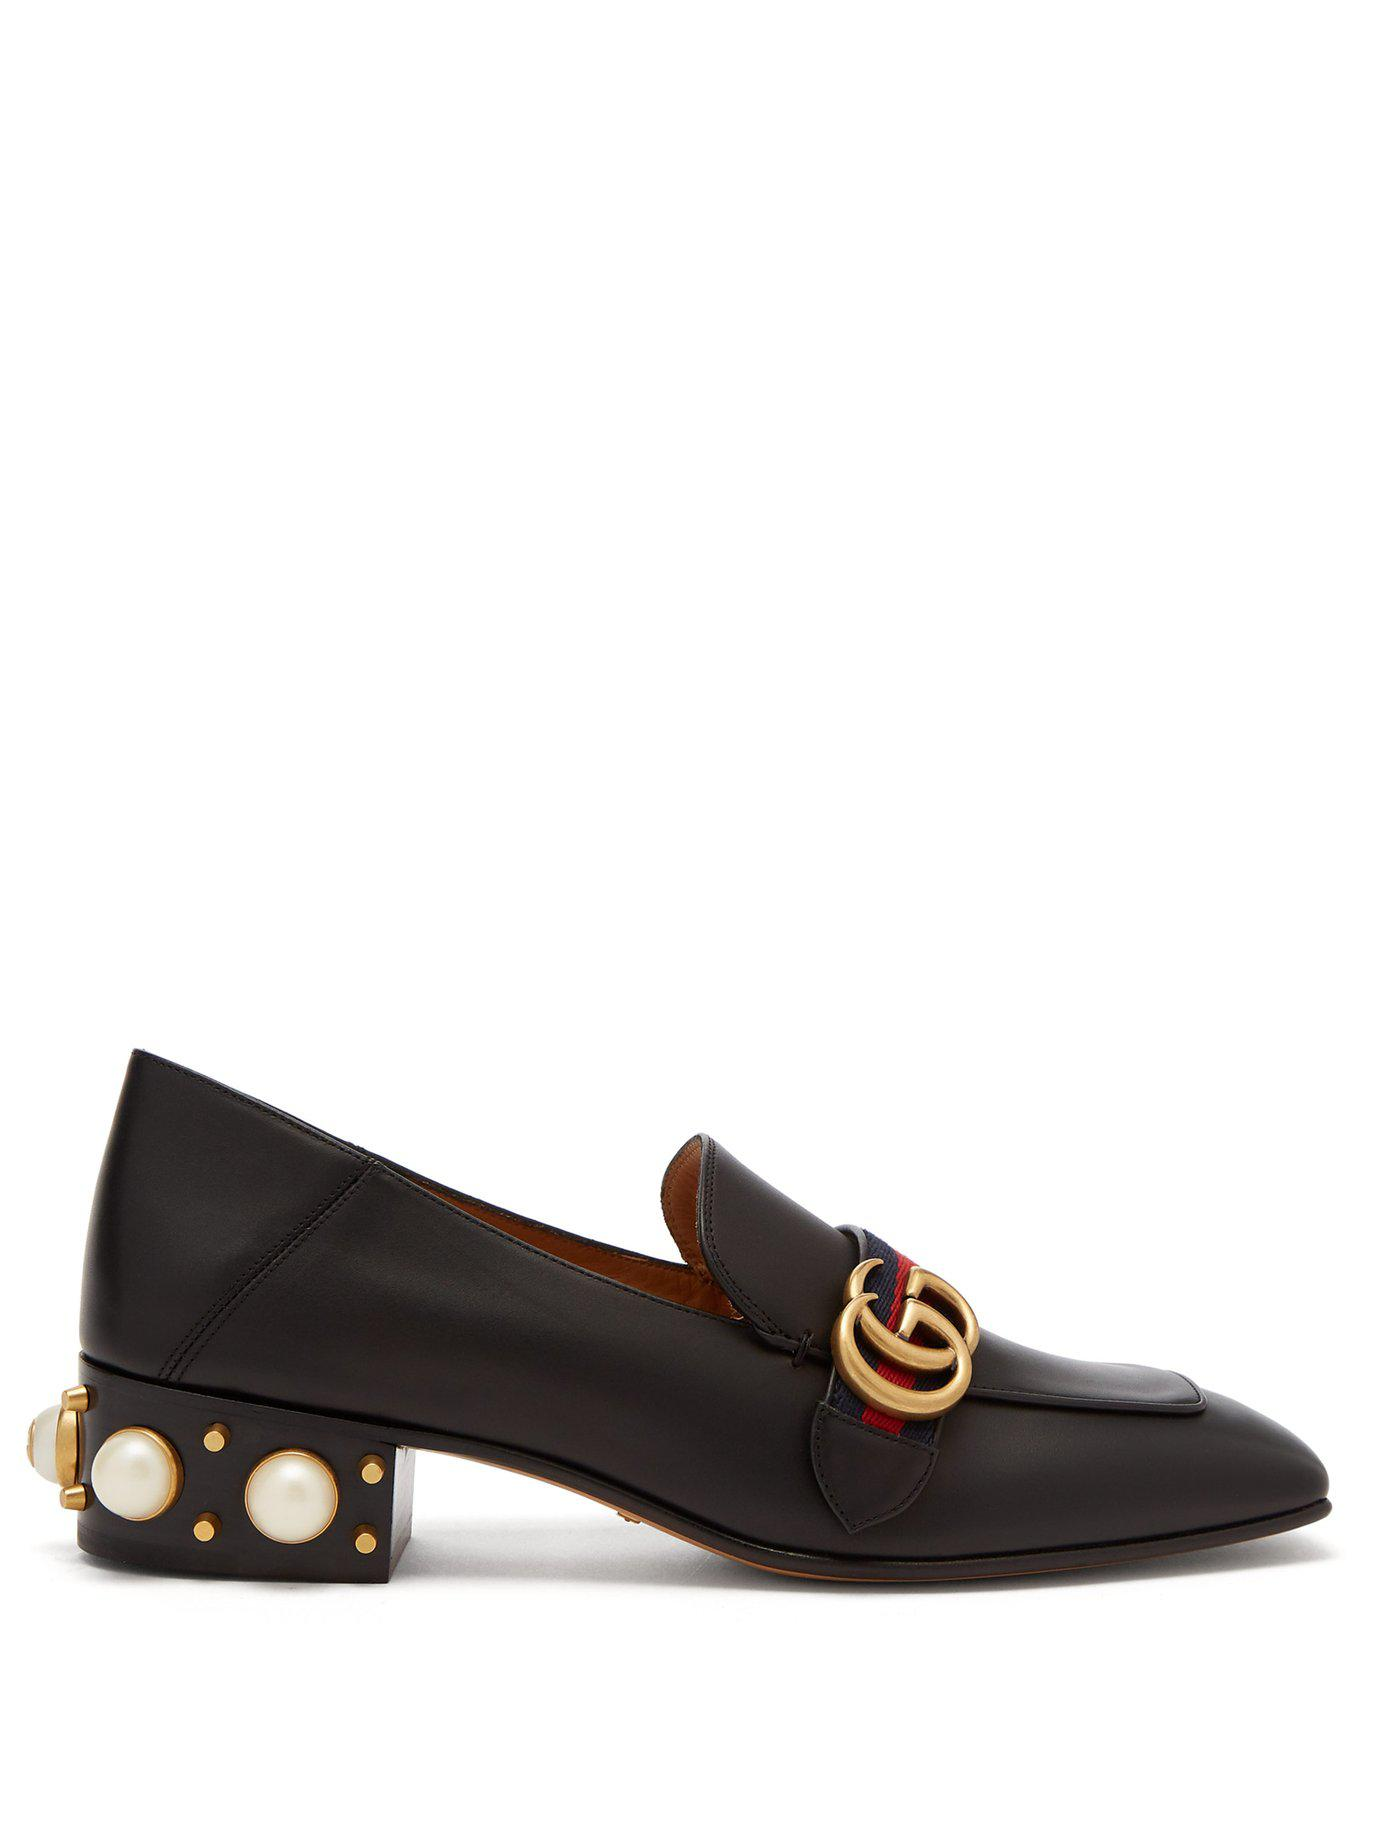 d9c39bc1cd4 Lyst - Gucci Peyton Faux Pearl Embellished Leather Loafers in Black